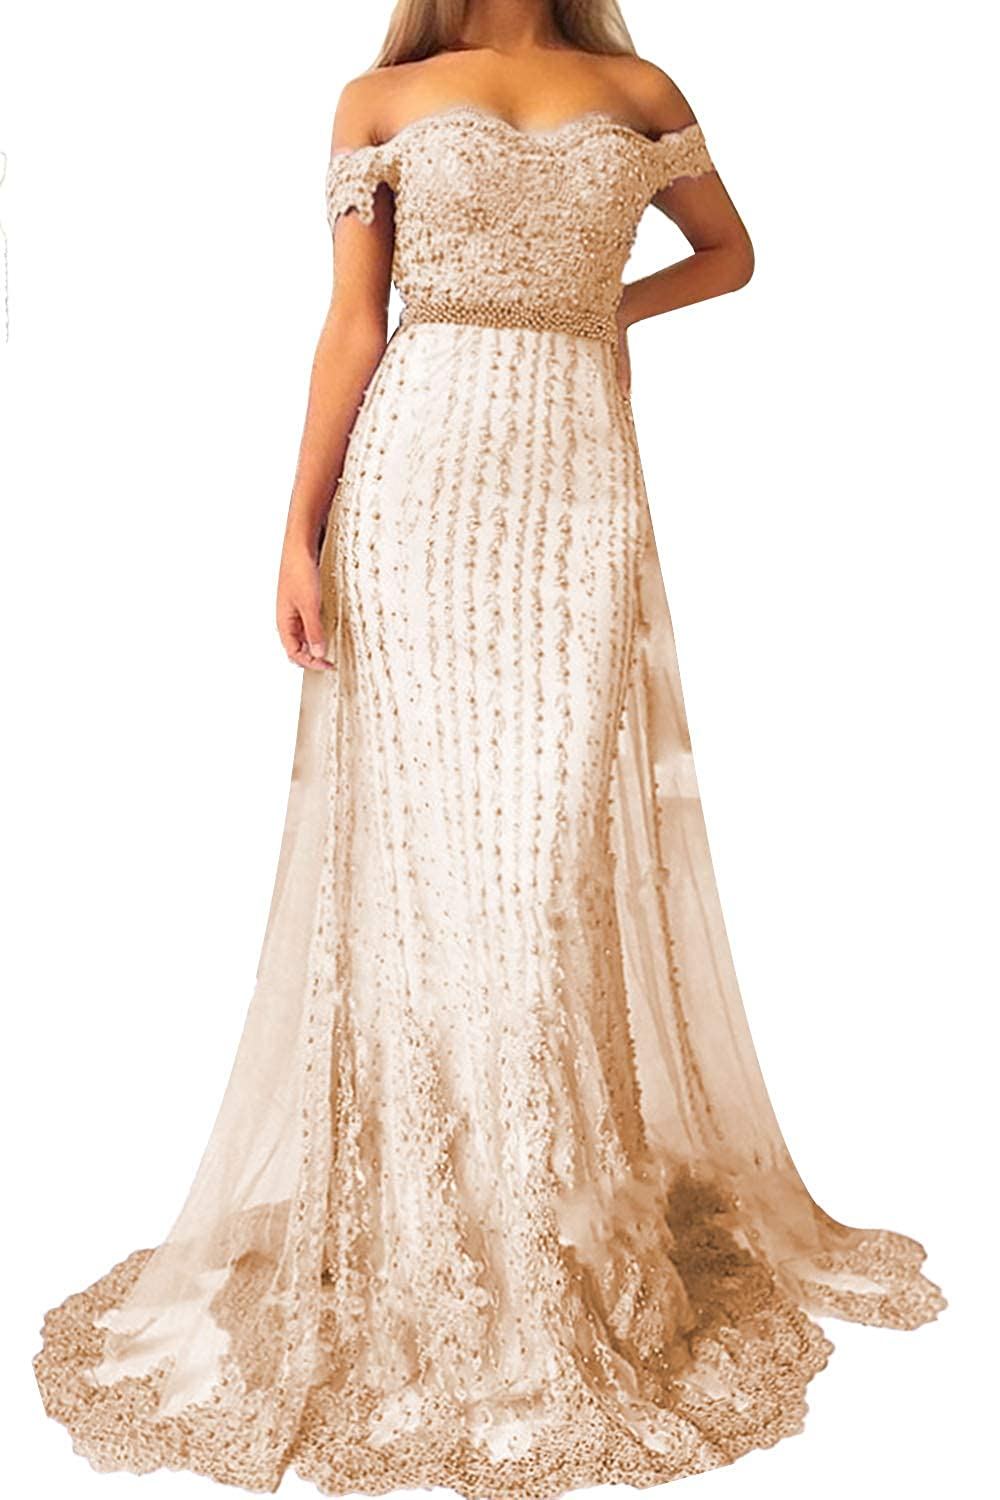 Champagne Promworld Women's Off The Shoulder Lace Applique Beaded Bridesmaid Dress Long Prom Dress with Train